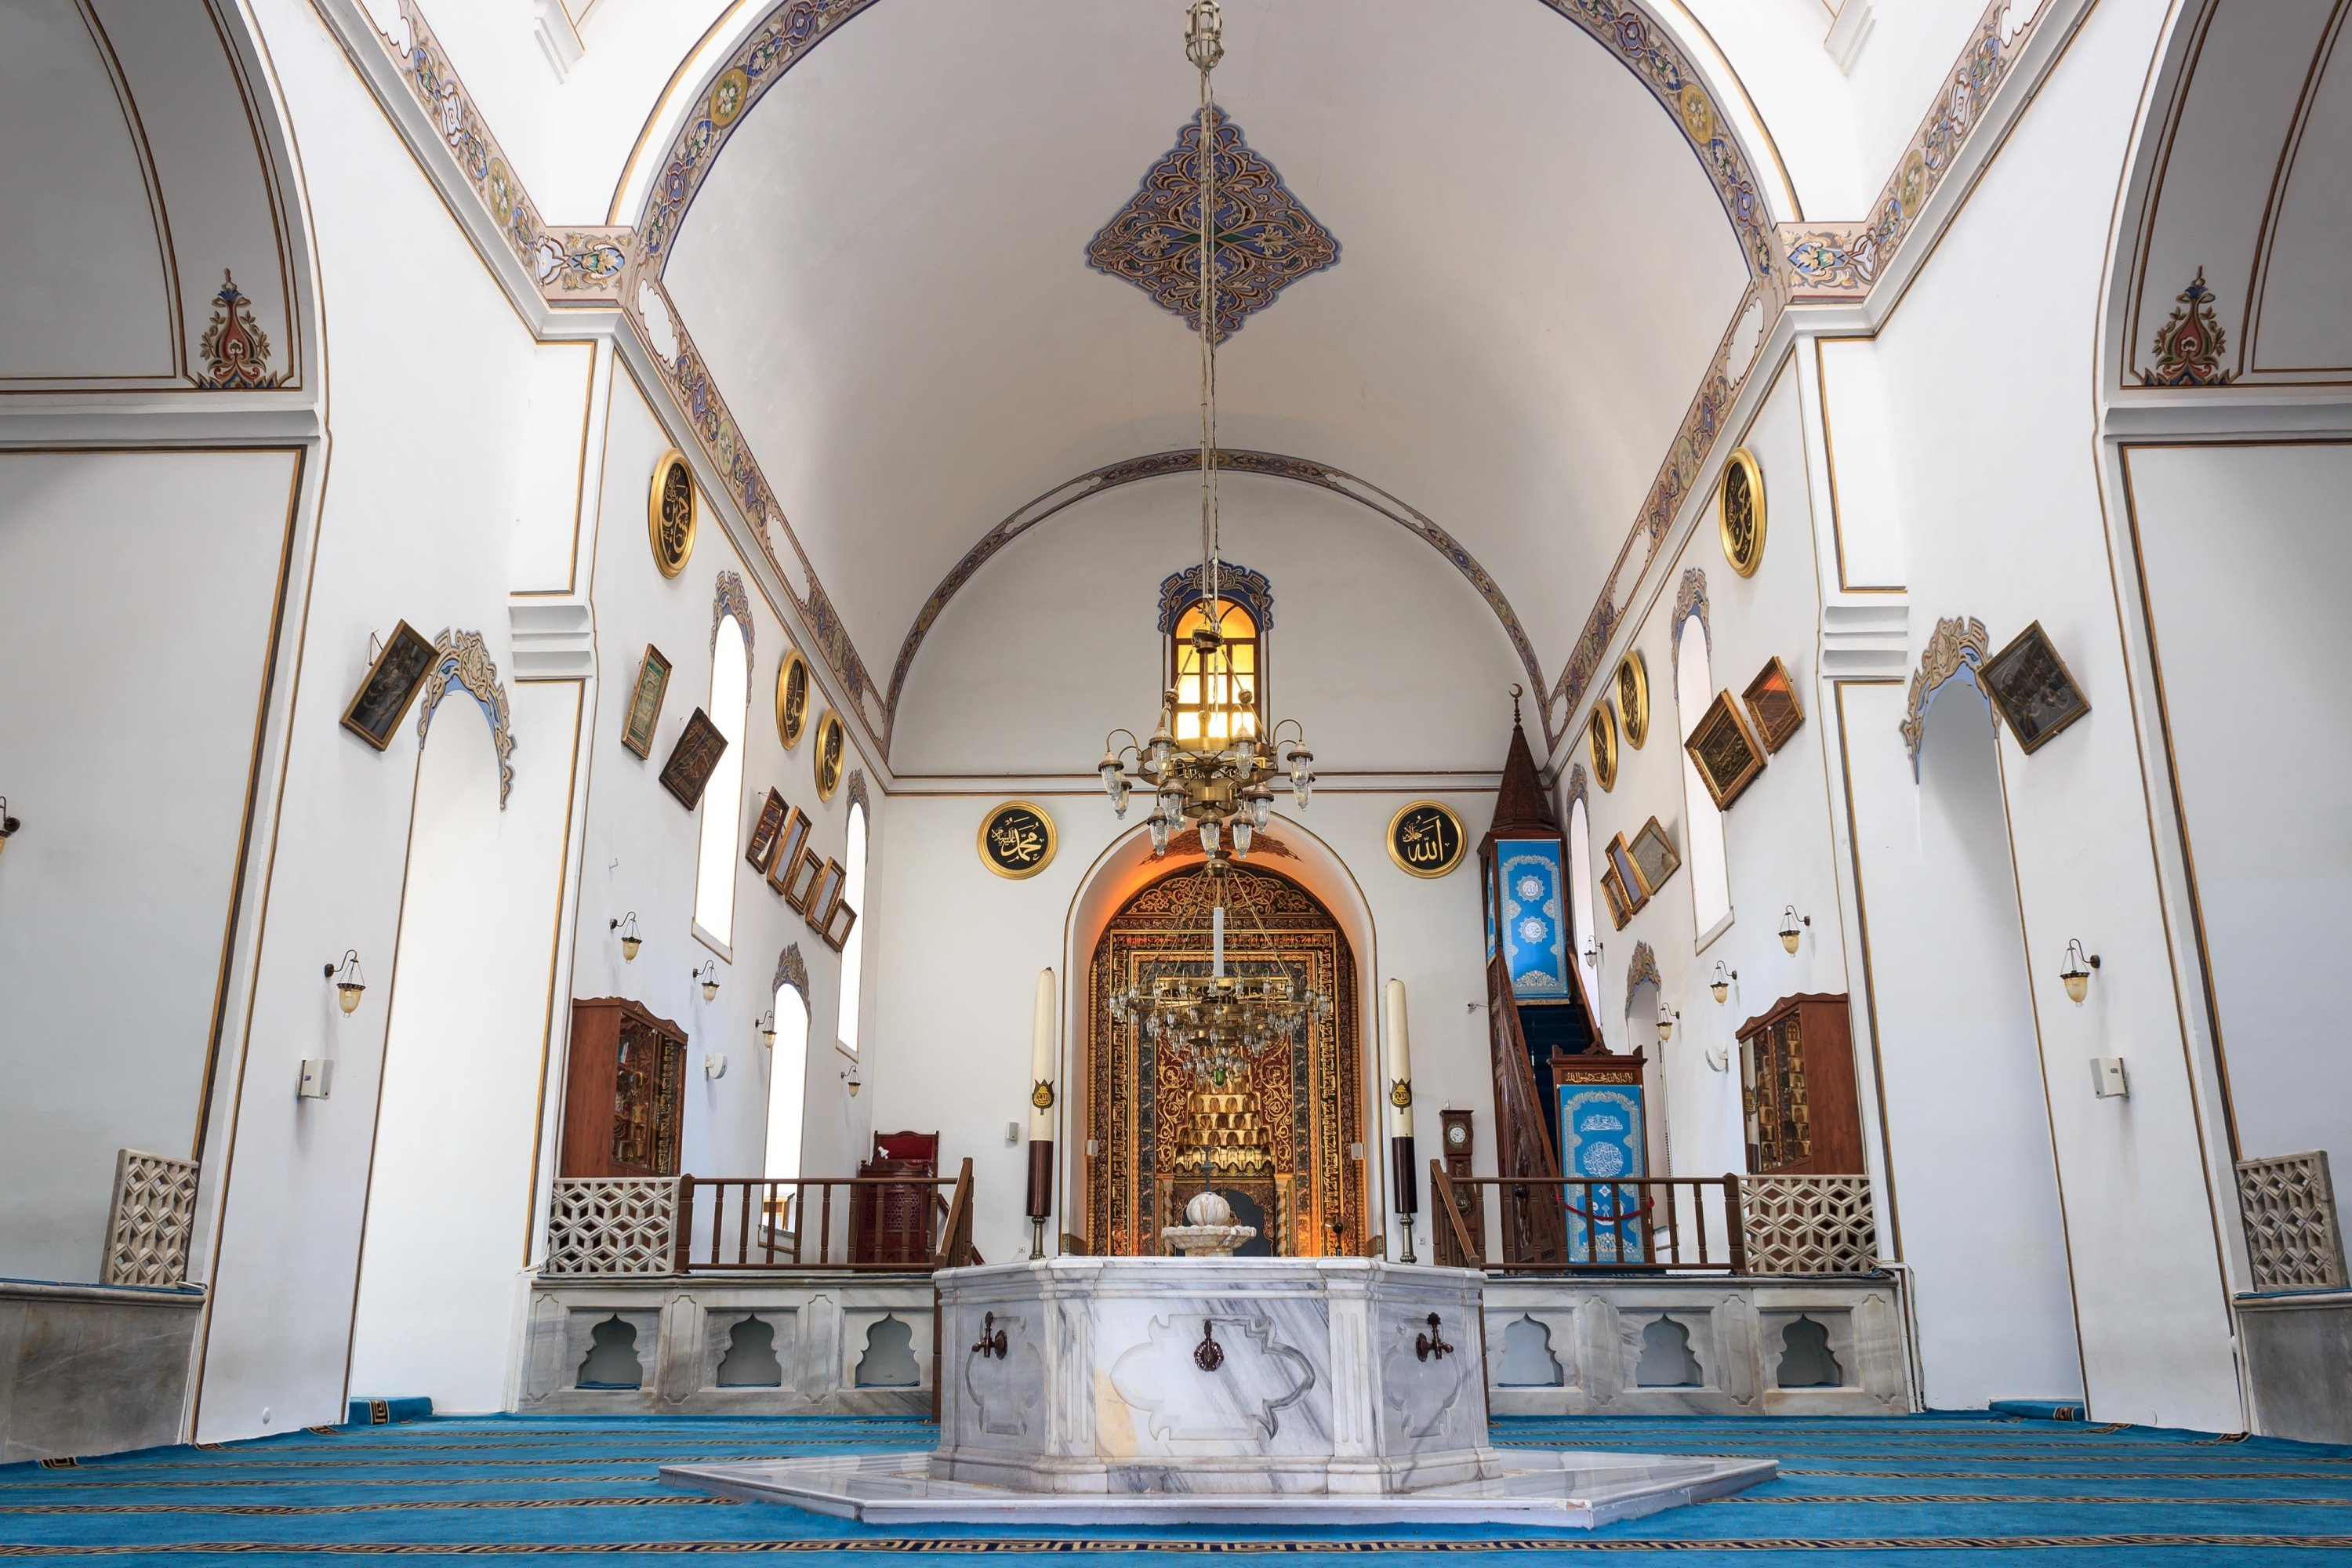 An interior view from the Hüdavendigar Mosque, commissioned by Sultan Murad I, Bursa, northwestern Turkey, March 13, 2020. (Shutterstock)